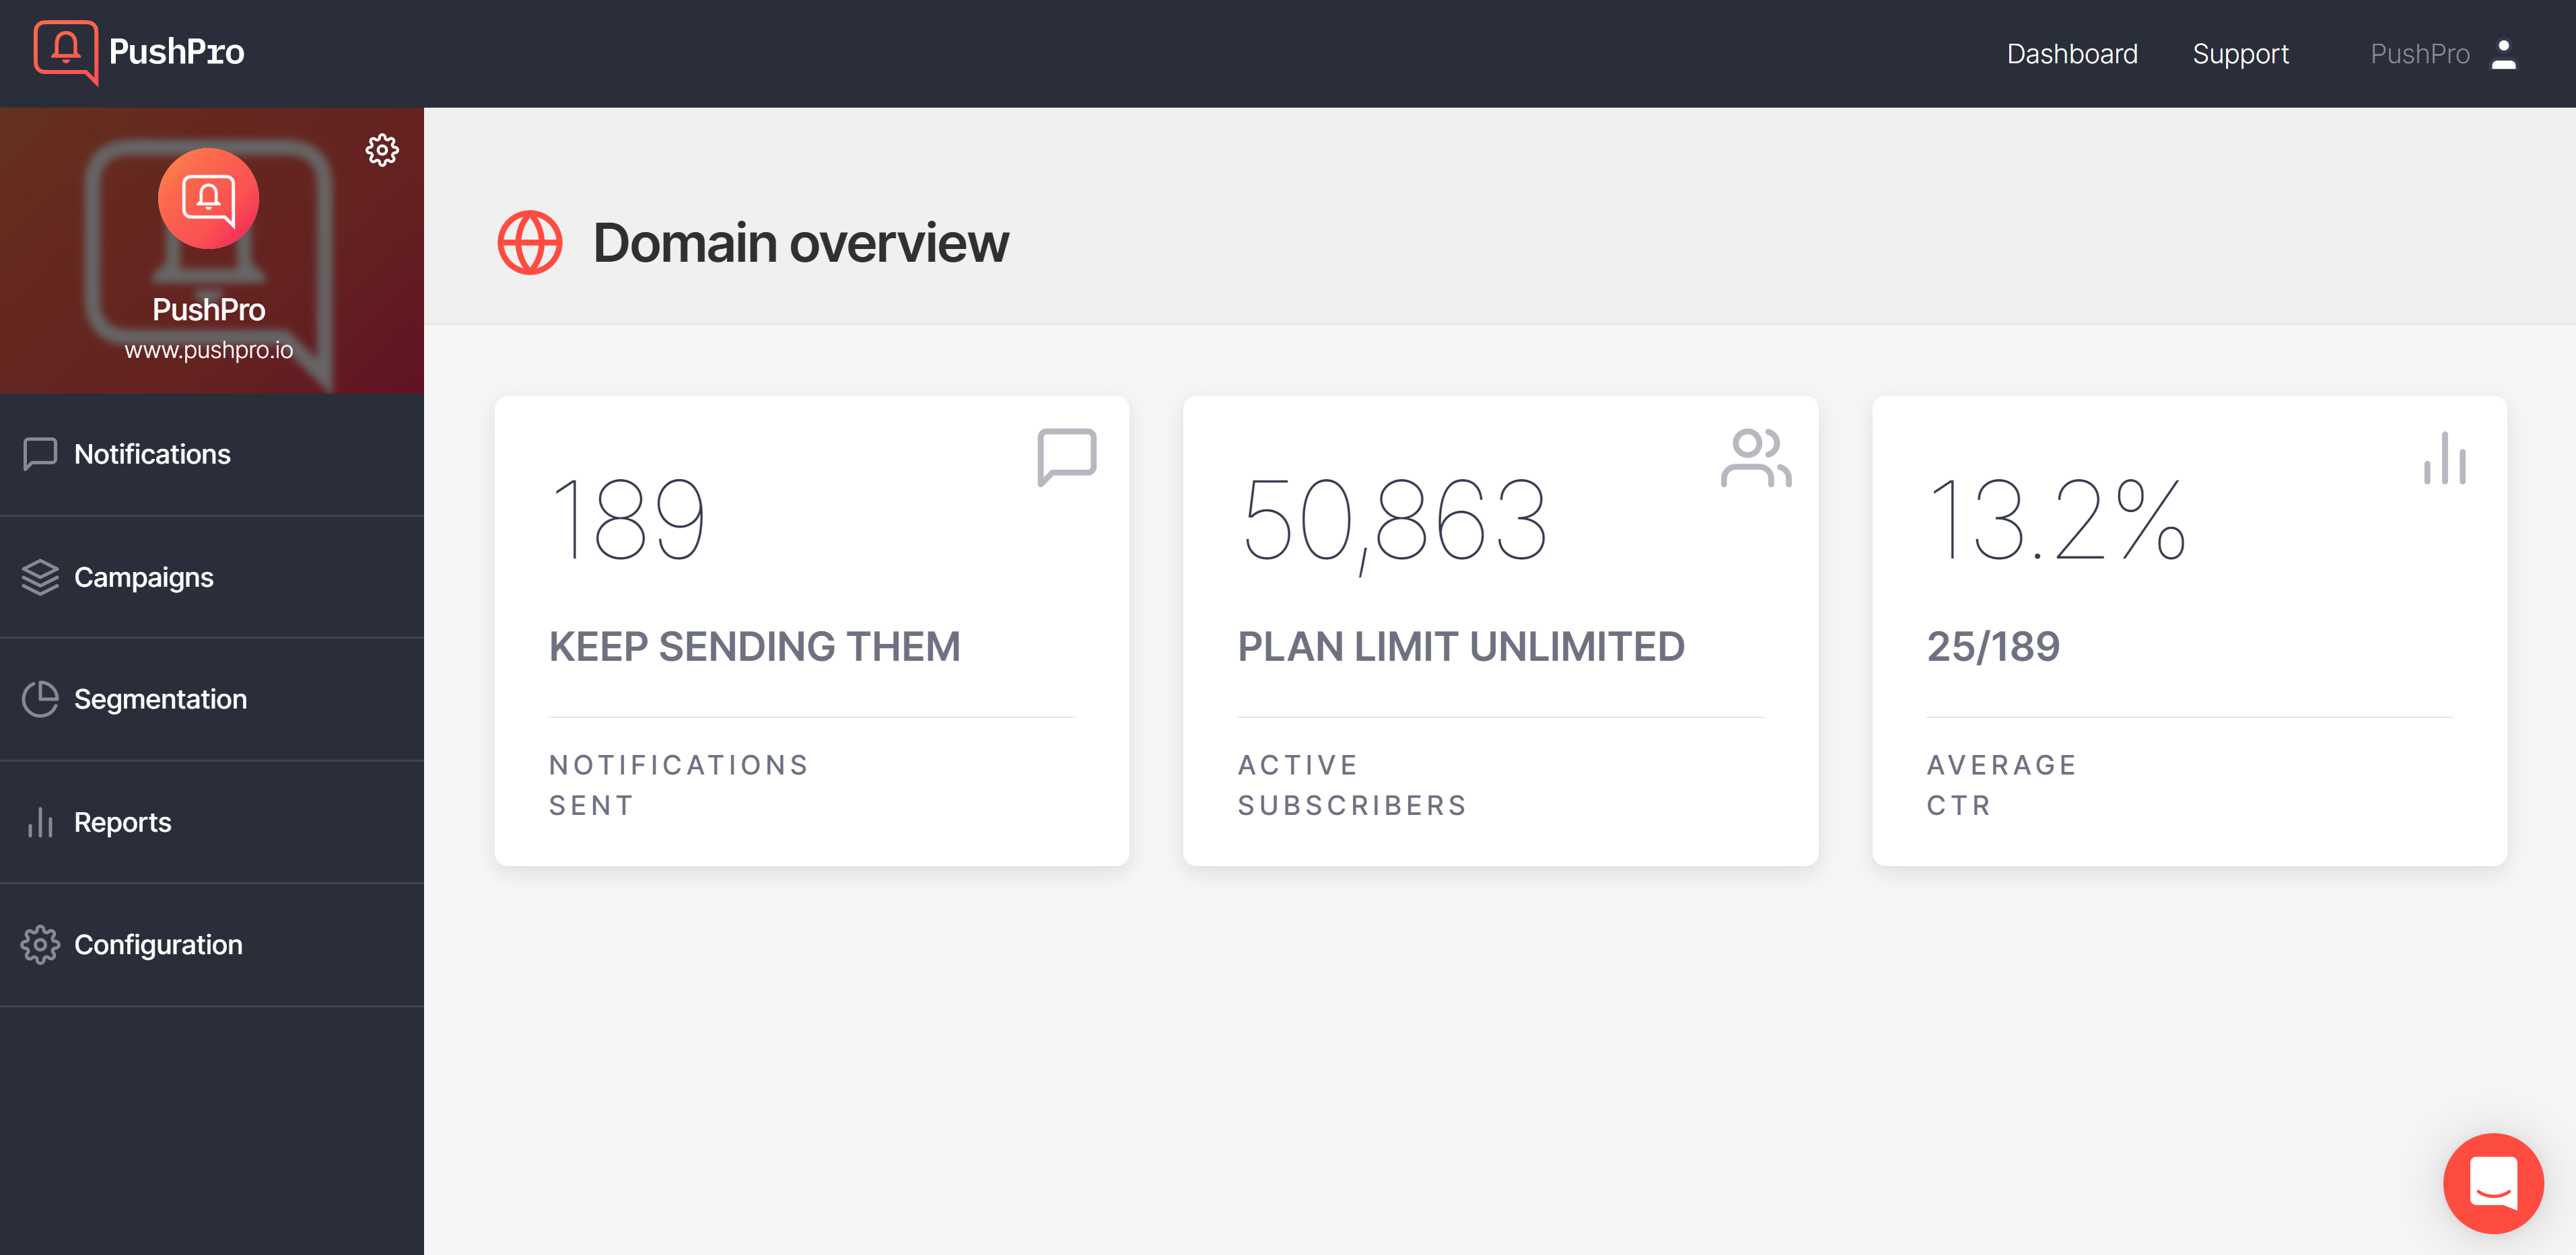 Screenshot of domain overview in the PushPro portal. Here you can find the number of sent notifications, of subcribers, and average CTR.